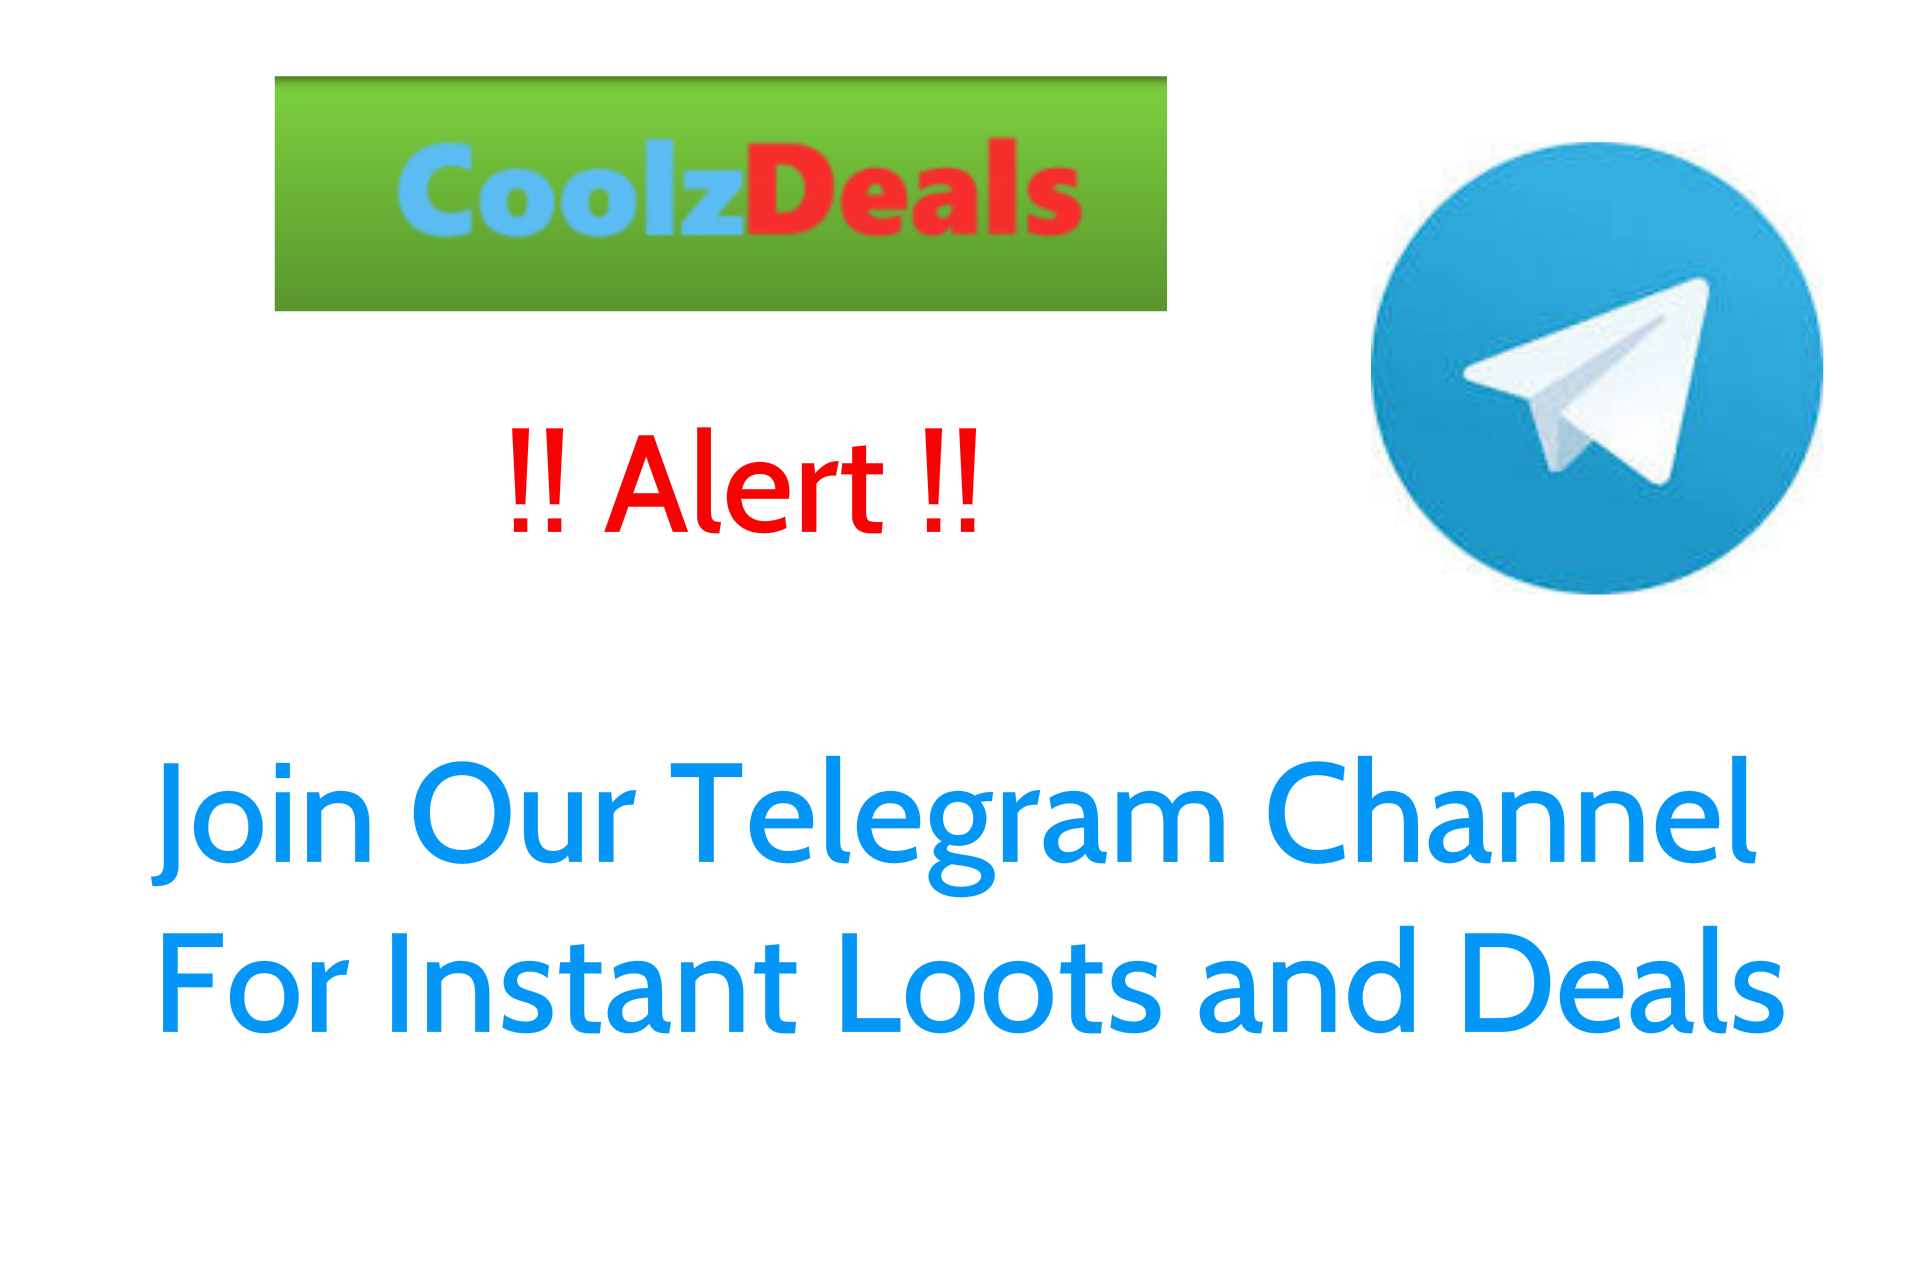 Attention join our telegram official broadcast for instant loots join our telegram official broadcast for instant loots free recharge tricks coolzdeals free paytm cash ccuart Gallery